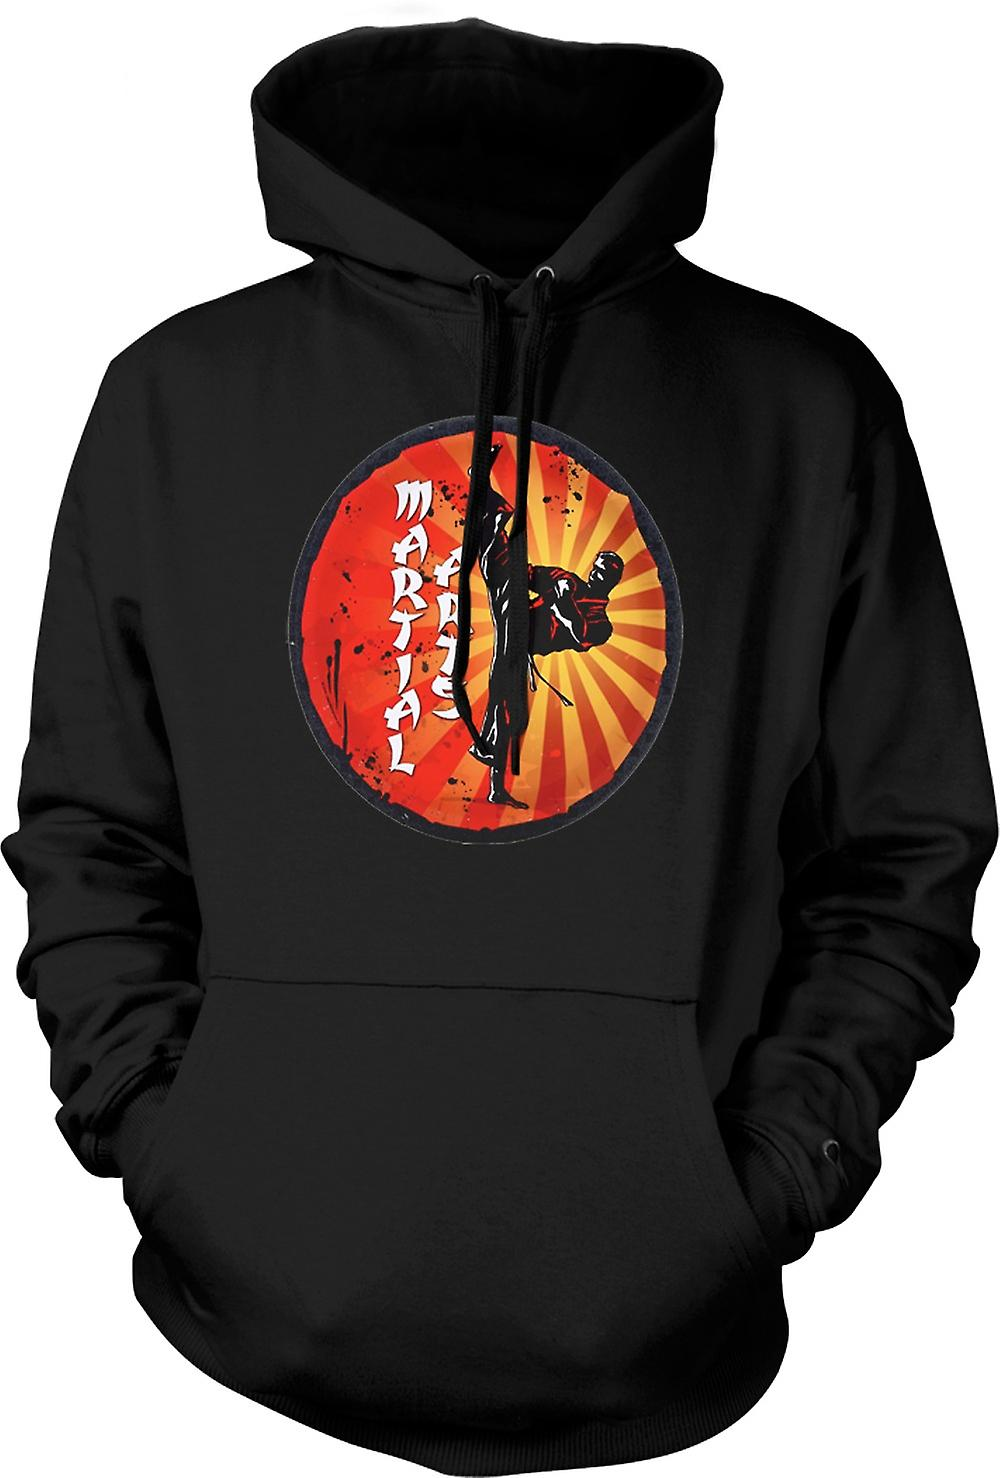 Mens Hoodie - Martial Arts - Pop Art Design